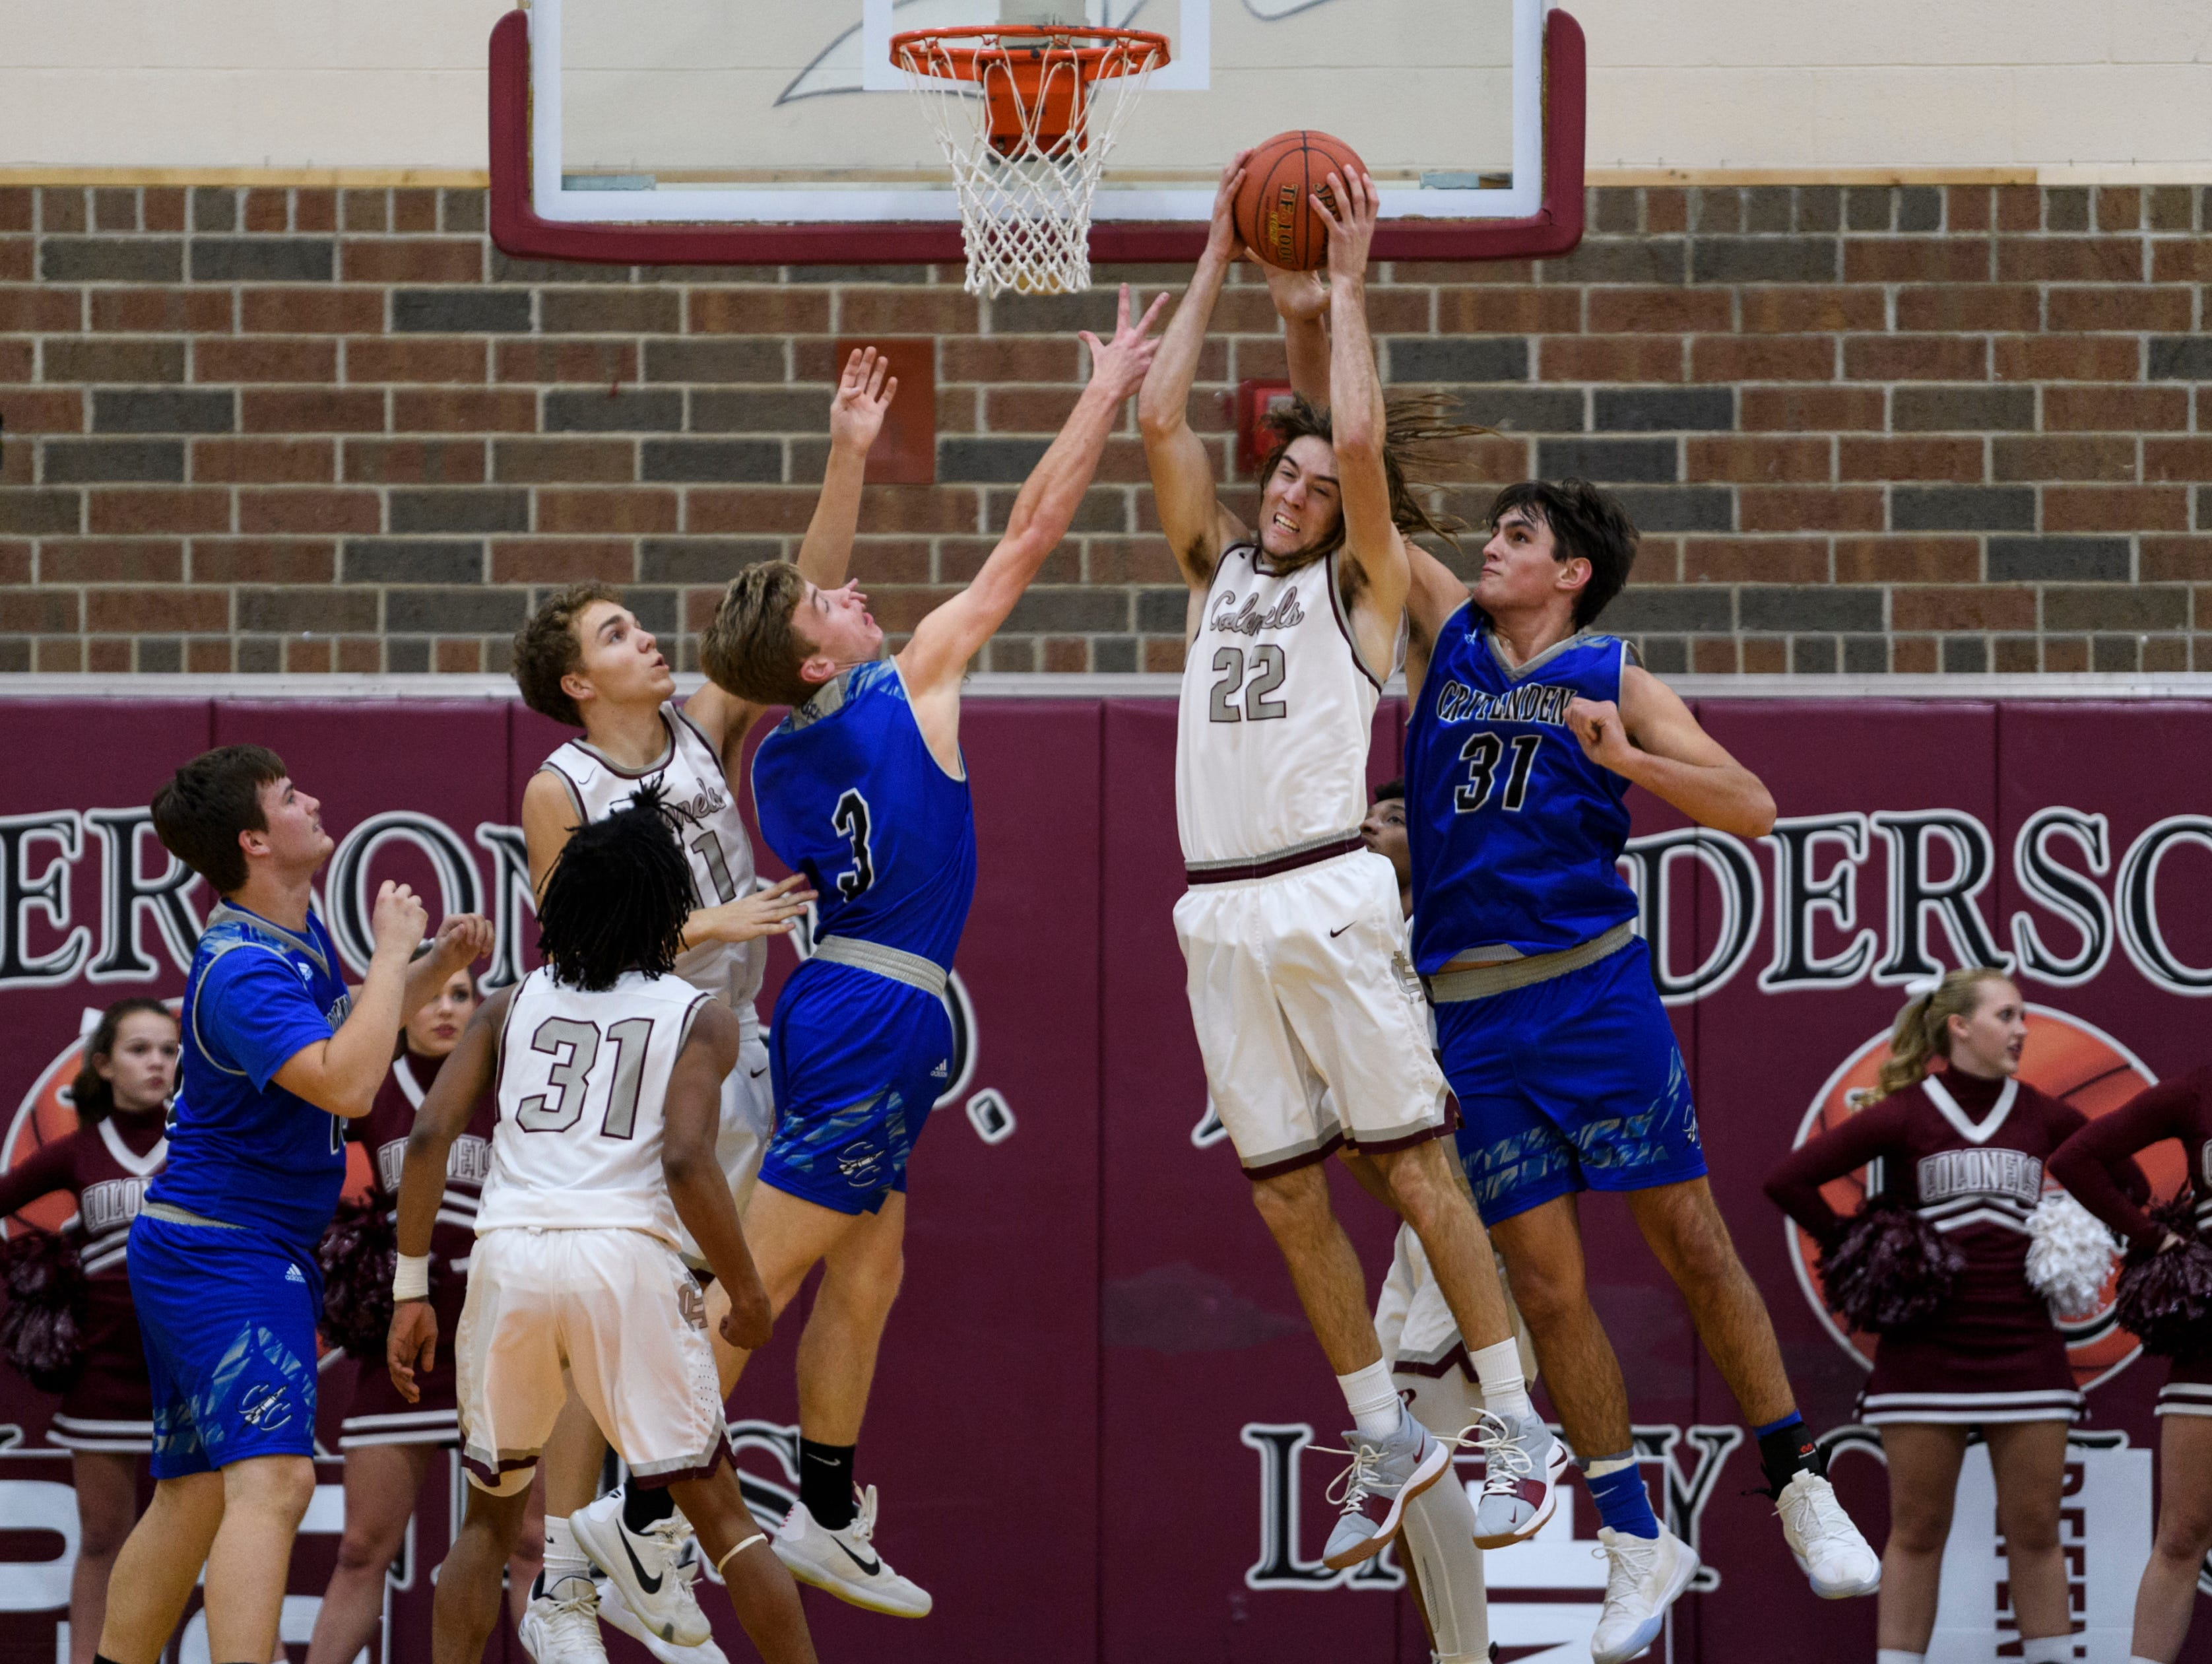 Henderson's Nick Cissell (22) snatches the rebound from Crittenden County's Preston Turley (31) during the first quarter at Henderson County High School in Henderson, Ky., Tuesday, Dec. 18, 2018. The Colonels defeated the Rockets 88-52.